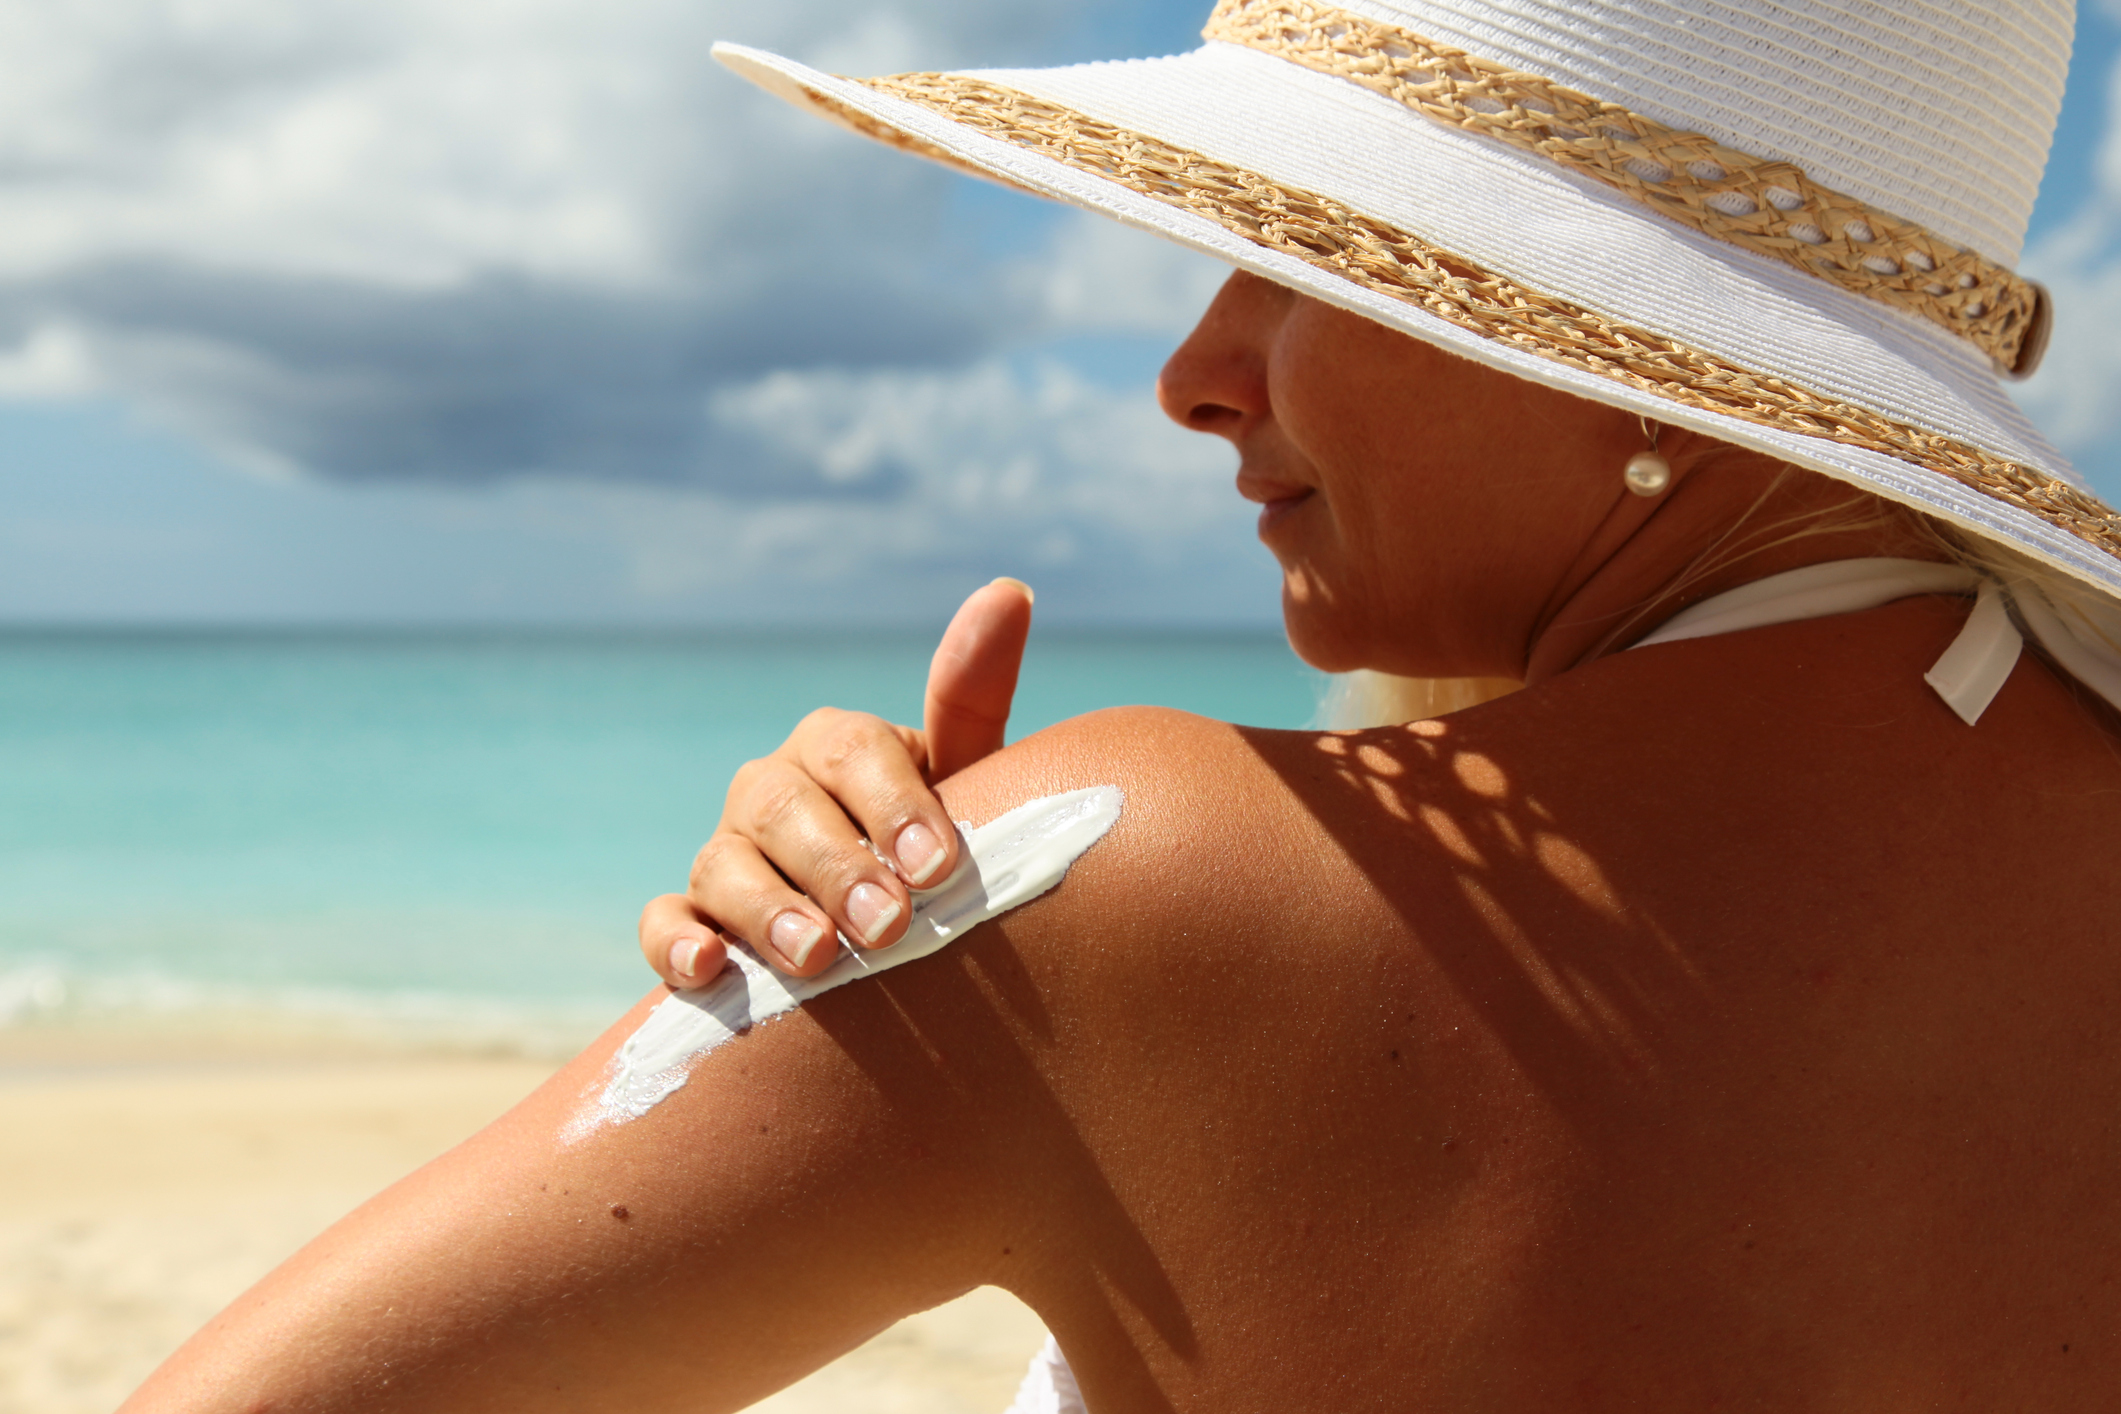 Mandatory sunscreen standards are needed, experts say. Photo: Getty Images